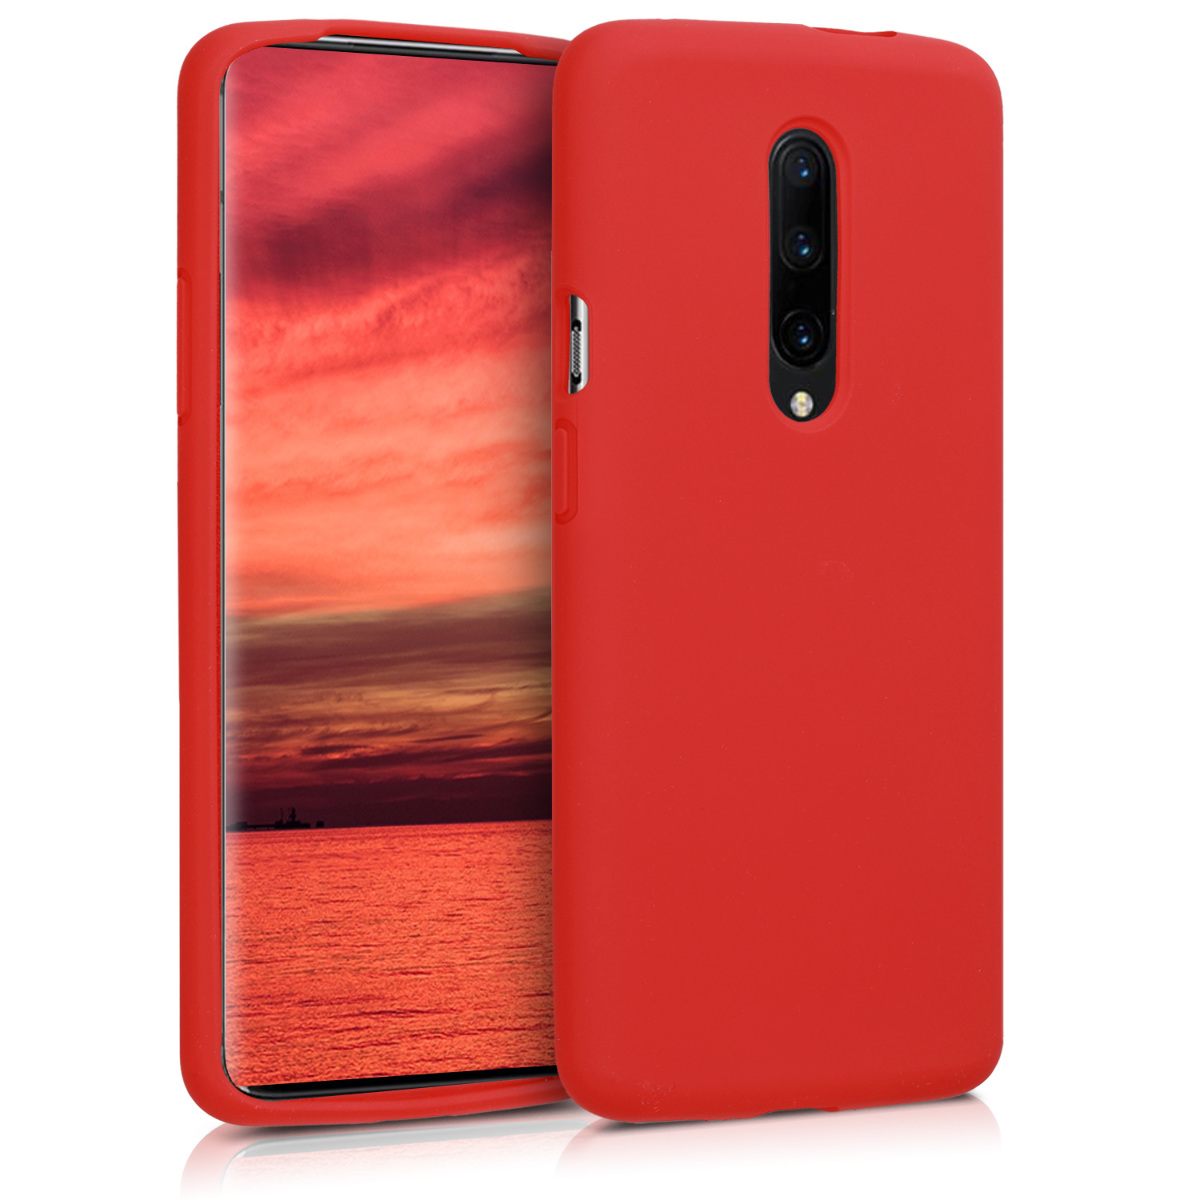 KW Θήκη Σιλικόνης OnePlus 7 Pro - Soft Flexible Rubber Protective Cover - Red (48595.09)